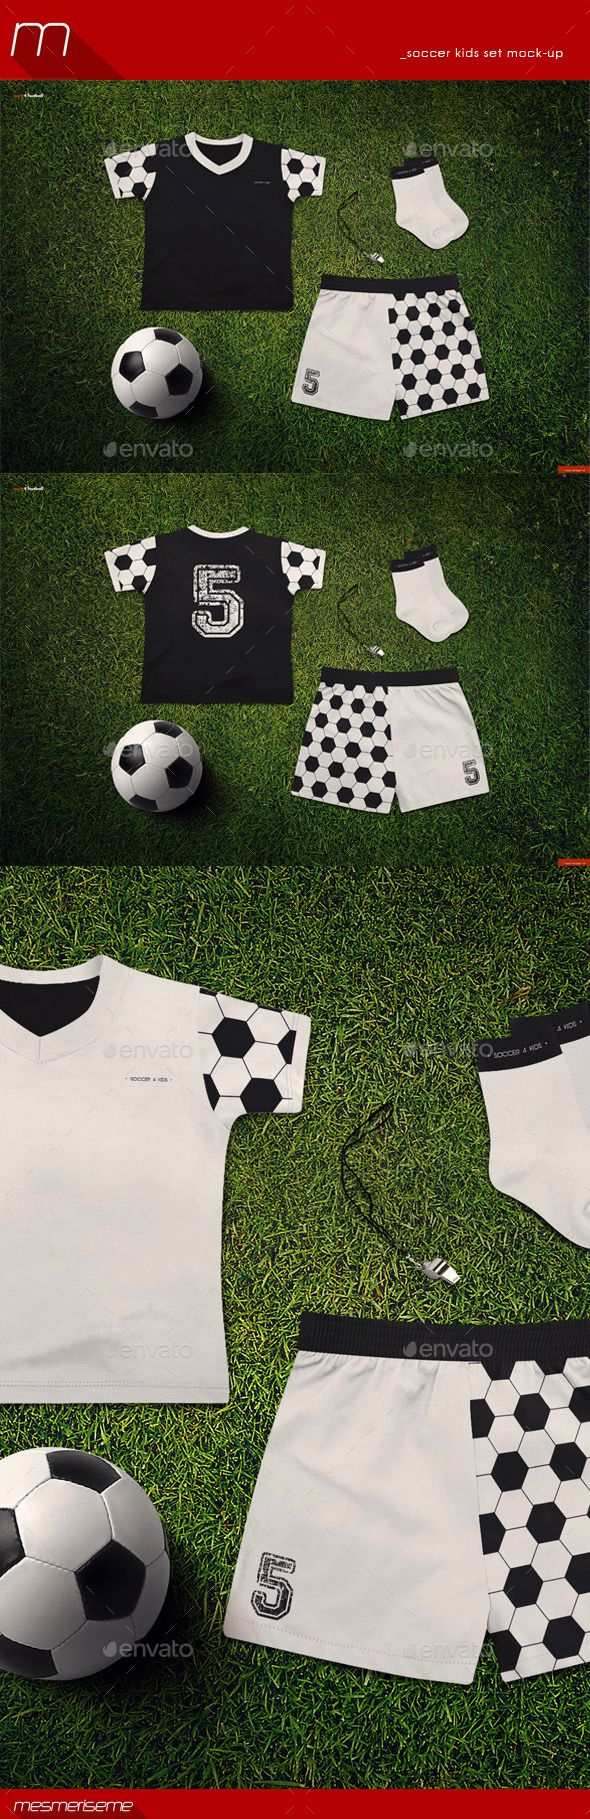 Soccer Kids Uniform Mock-up | Download: http://graphicriver.net/item/soccer-kids-uniform-mockup/9370152?ref=ksioks